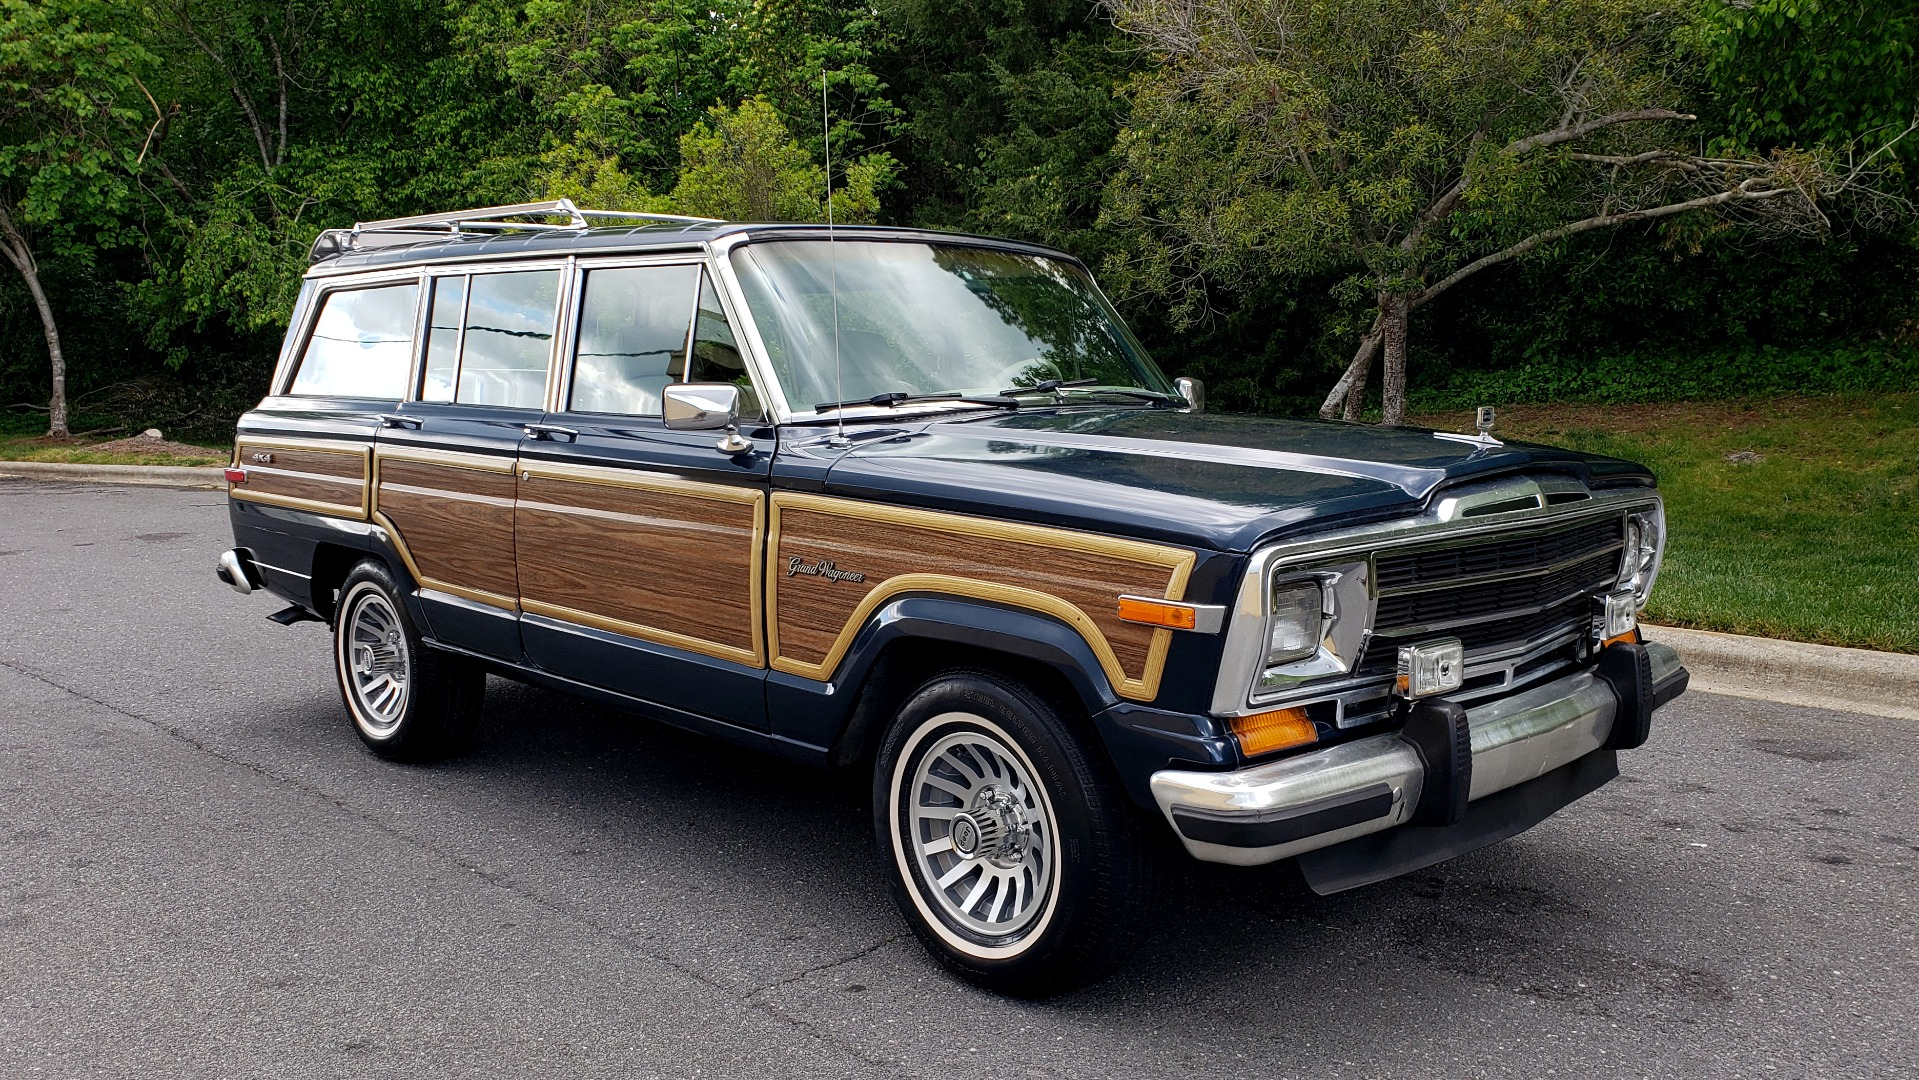 Used 1989 Jeep GRAND WAGONEER 4x4 / 5.9L V8 / 3-SPEED AUTO / PIONEER STEREO for sale Sold at Formula Imports in Charlotte NC 28227 4